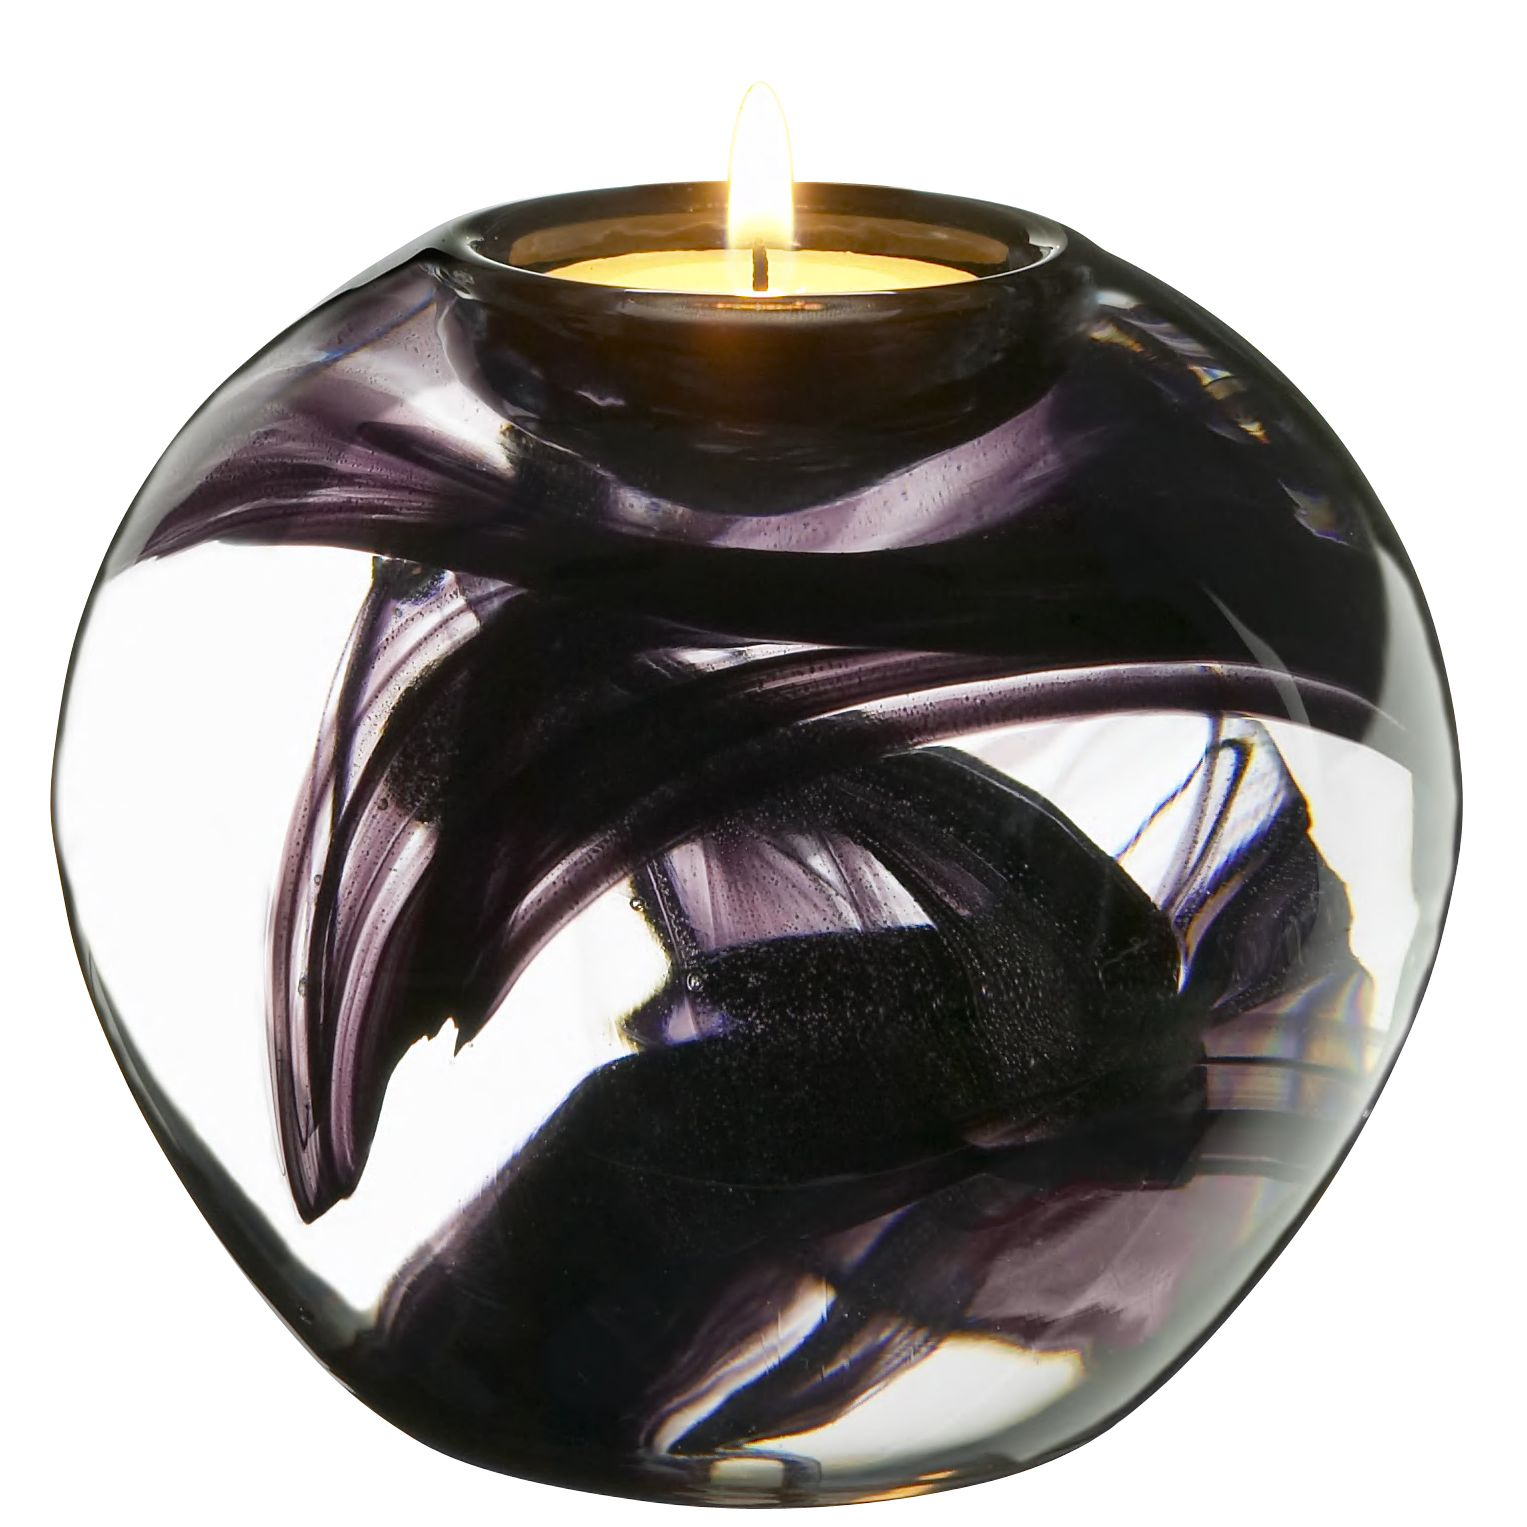 Kosta Boda Cool Moons Tealight Holder, Black, Large